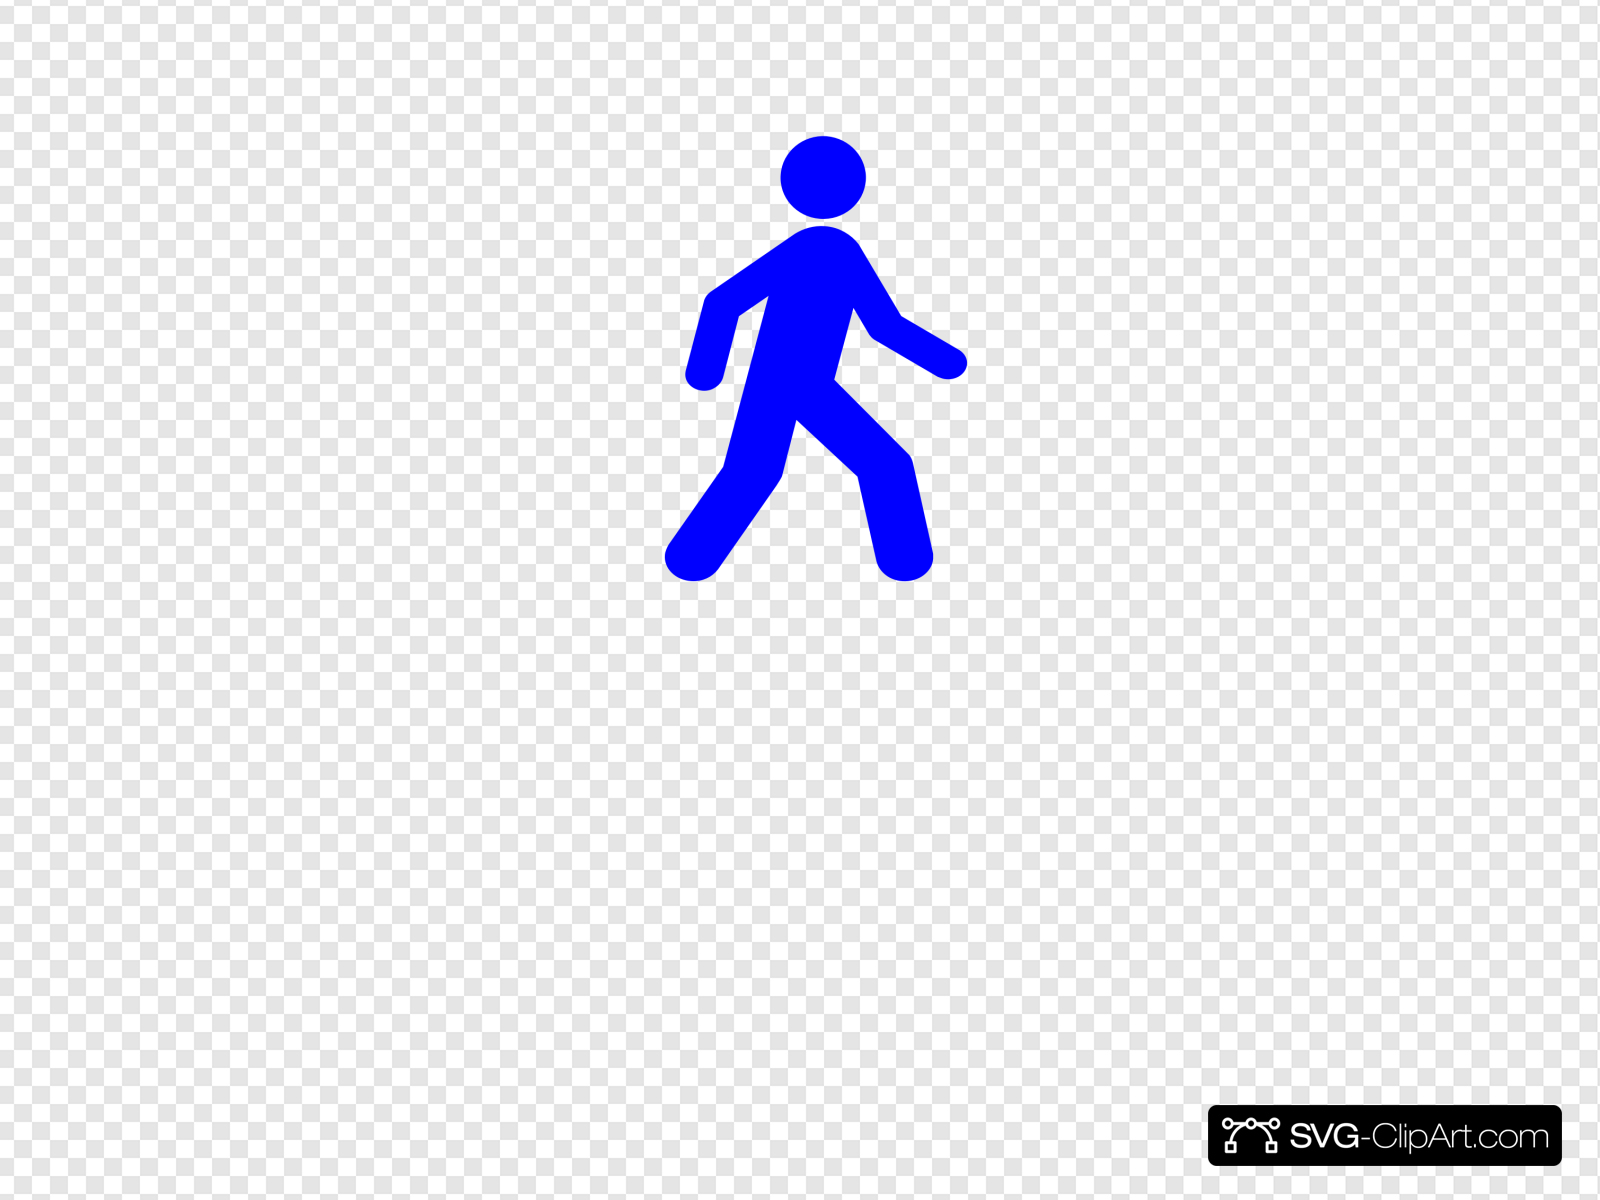 Walking Man Blue Clip art, Icon and SVG.